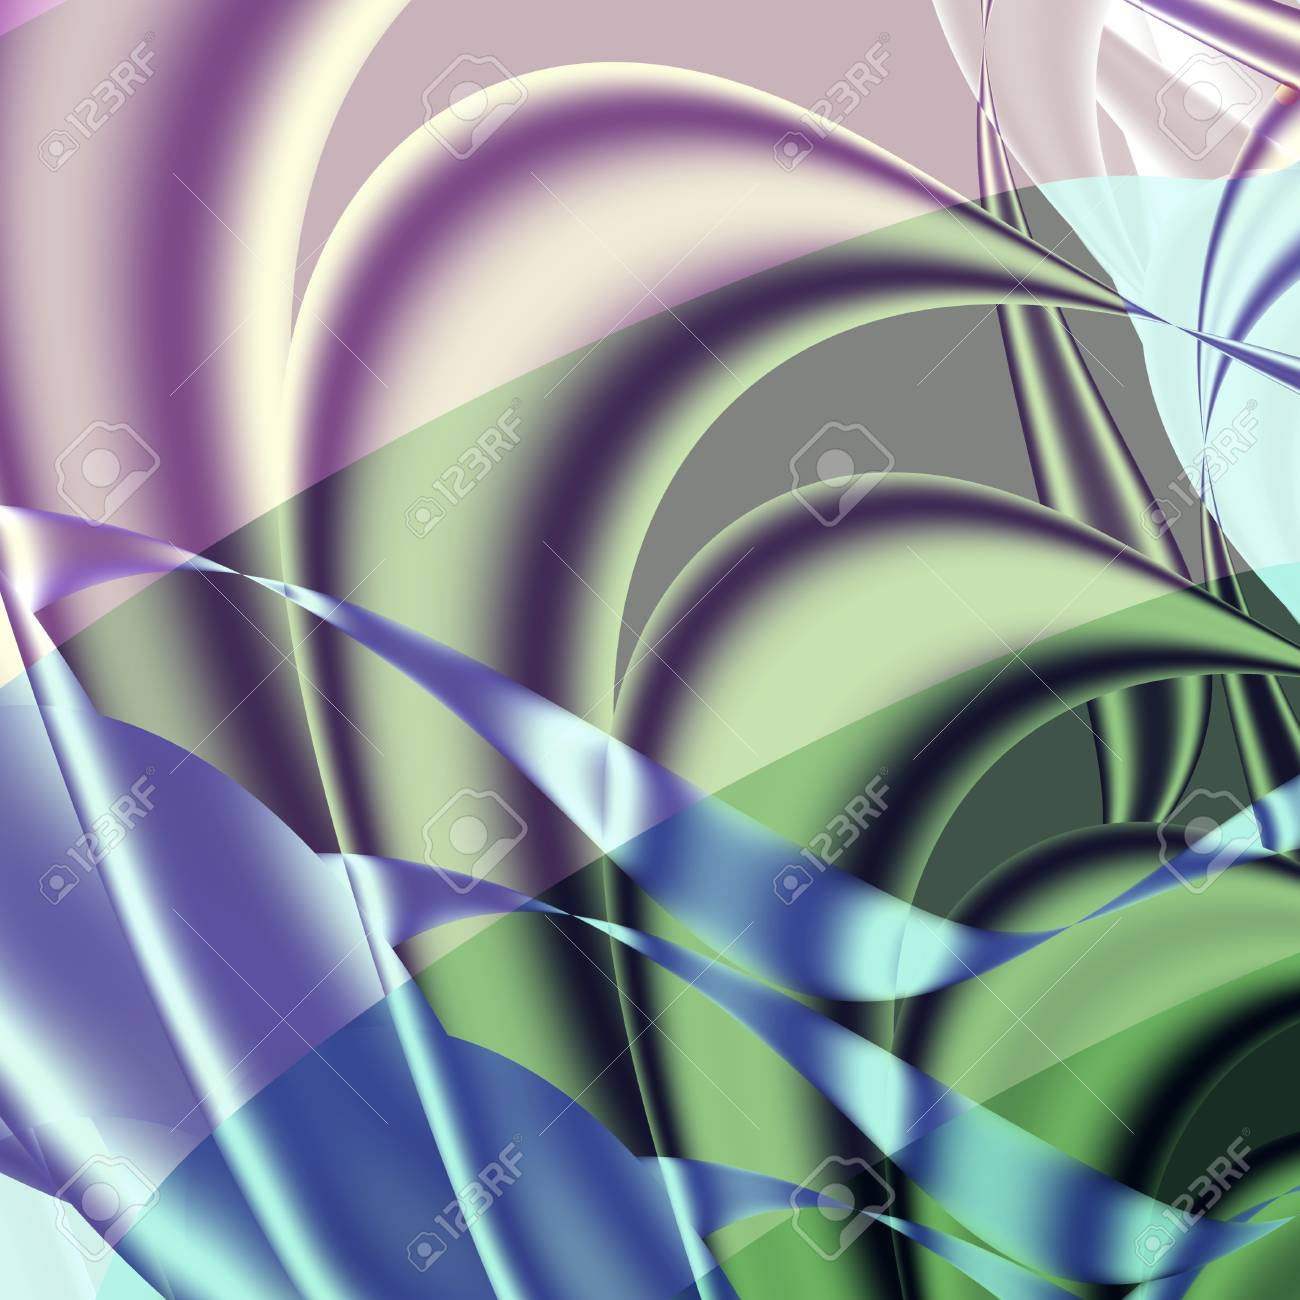 abstract background Stock Photo - 4036874